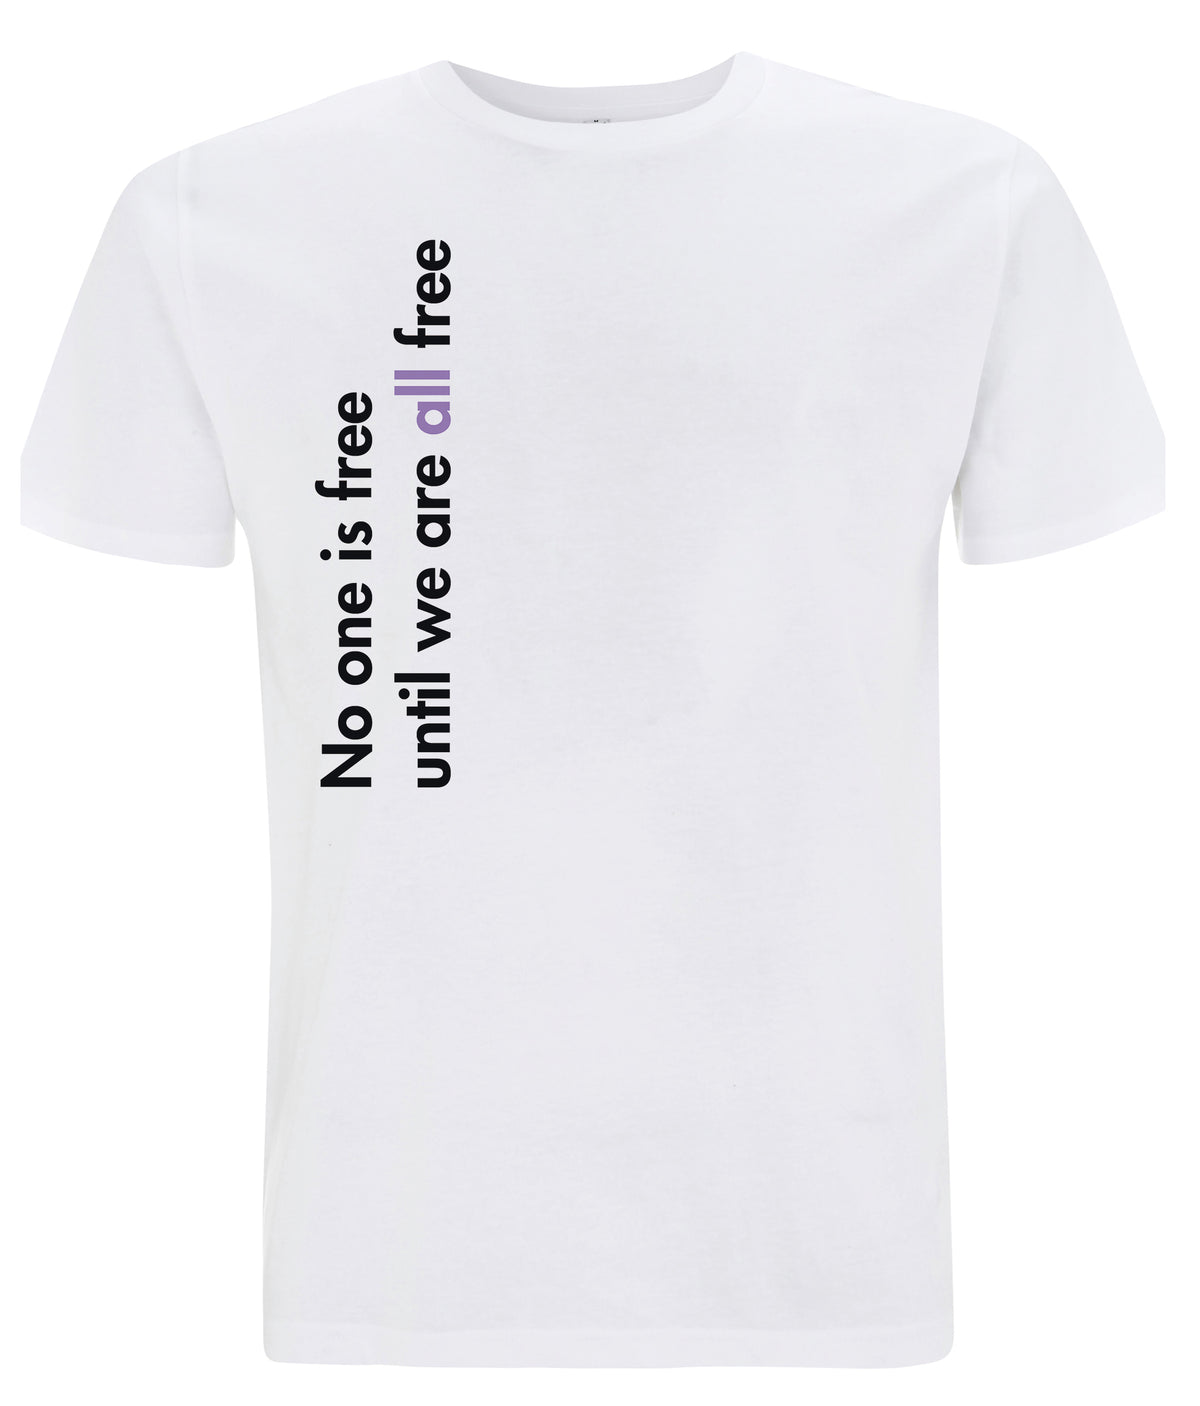 No One Is Free Until We Are All Free Organic Feminist T Shirt White